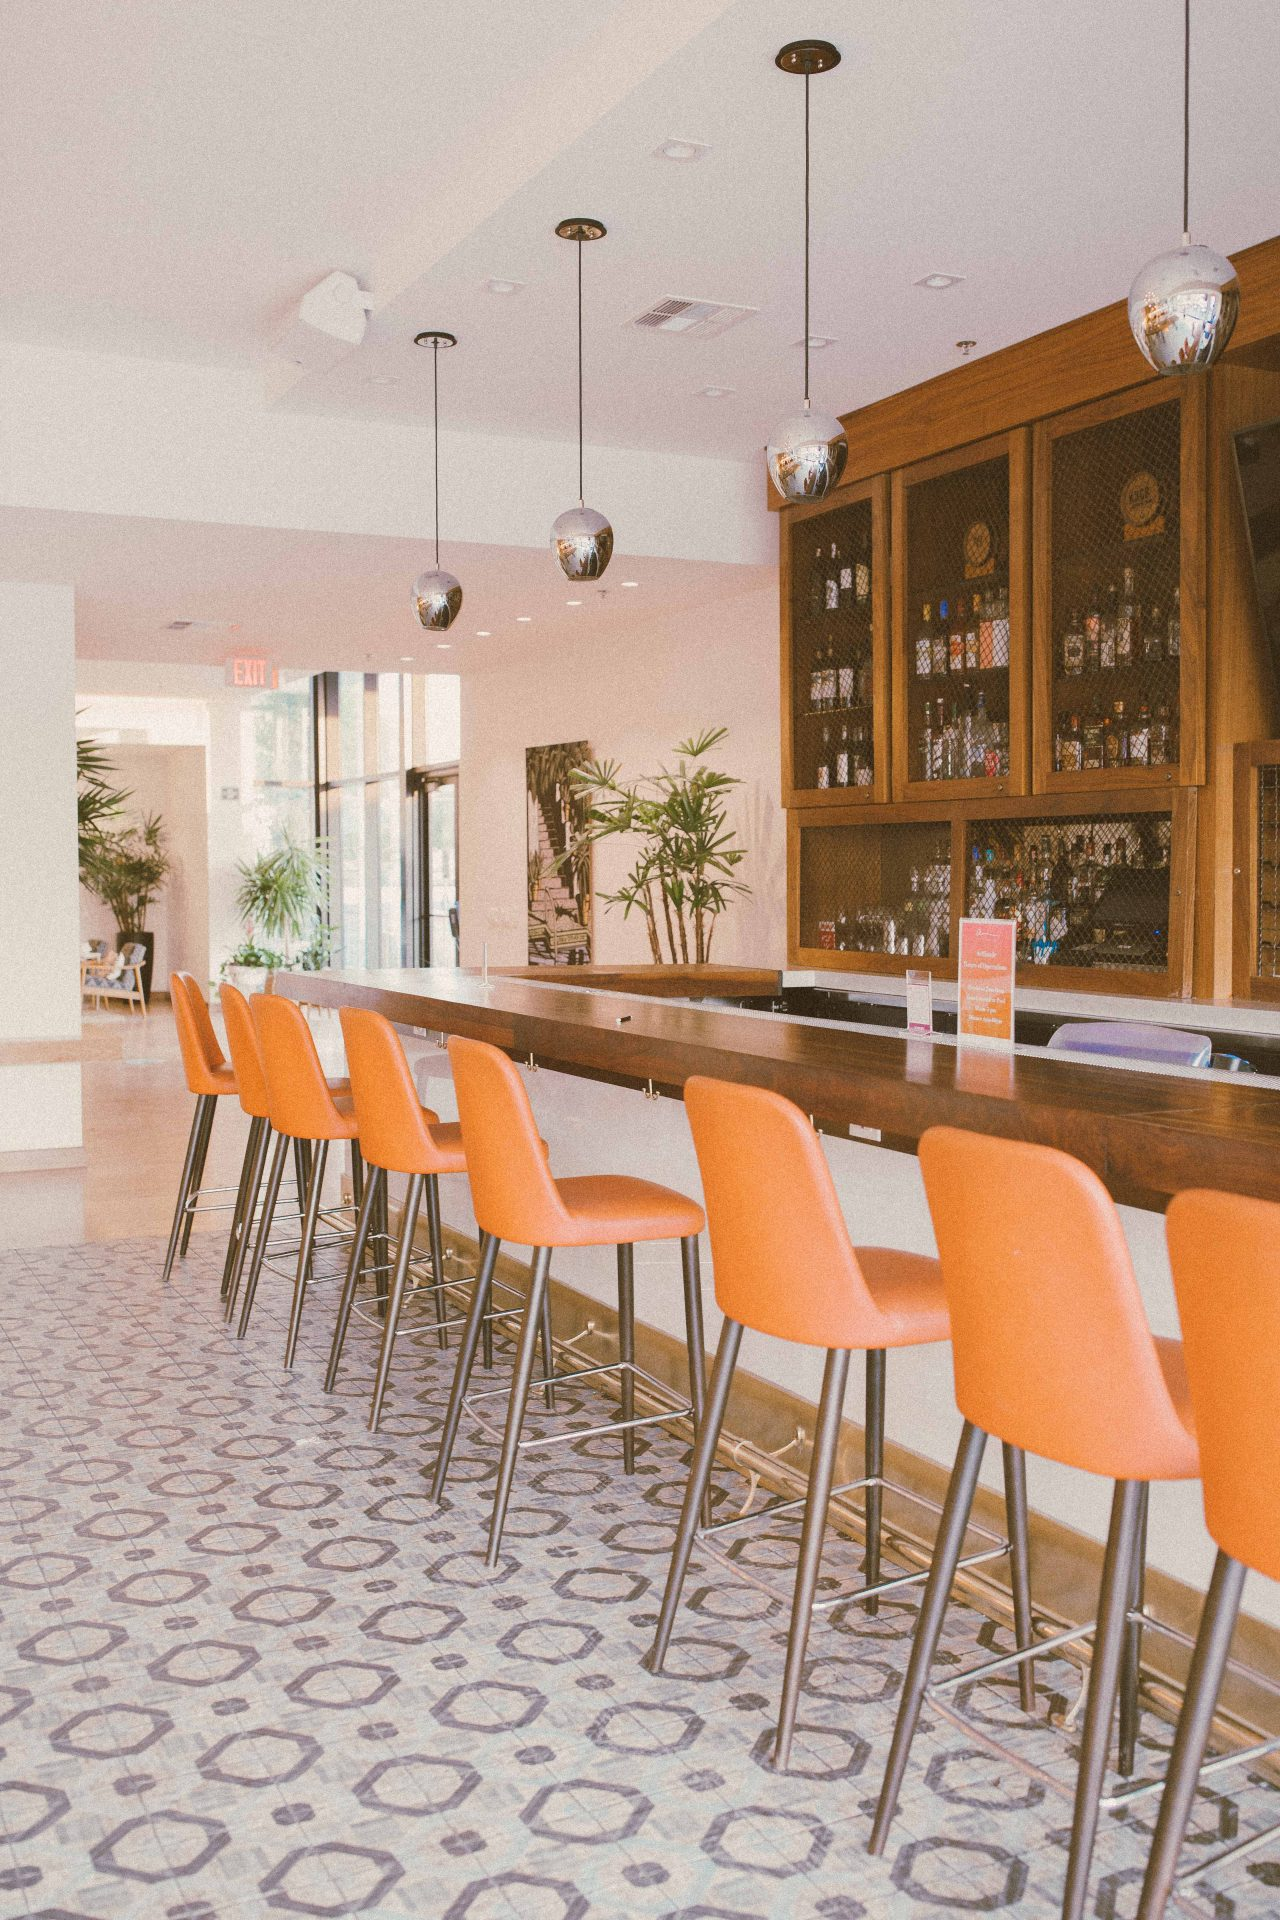 Scottsdale Arizona travel guide, what to do in scottsdale, where to stay scottsdale Arizona, hotel Adeline, brunch, breakfast, coffee, pool time, cabana, hotel Adeline in scottsdale, drinks by the pool, honeymoon, bachelorette, what to do in scottsdale, boutique motel, affordable hotels